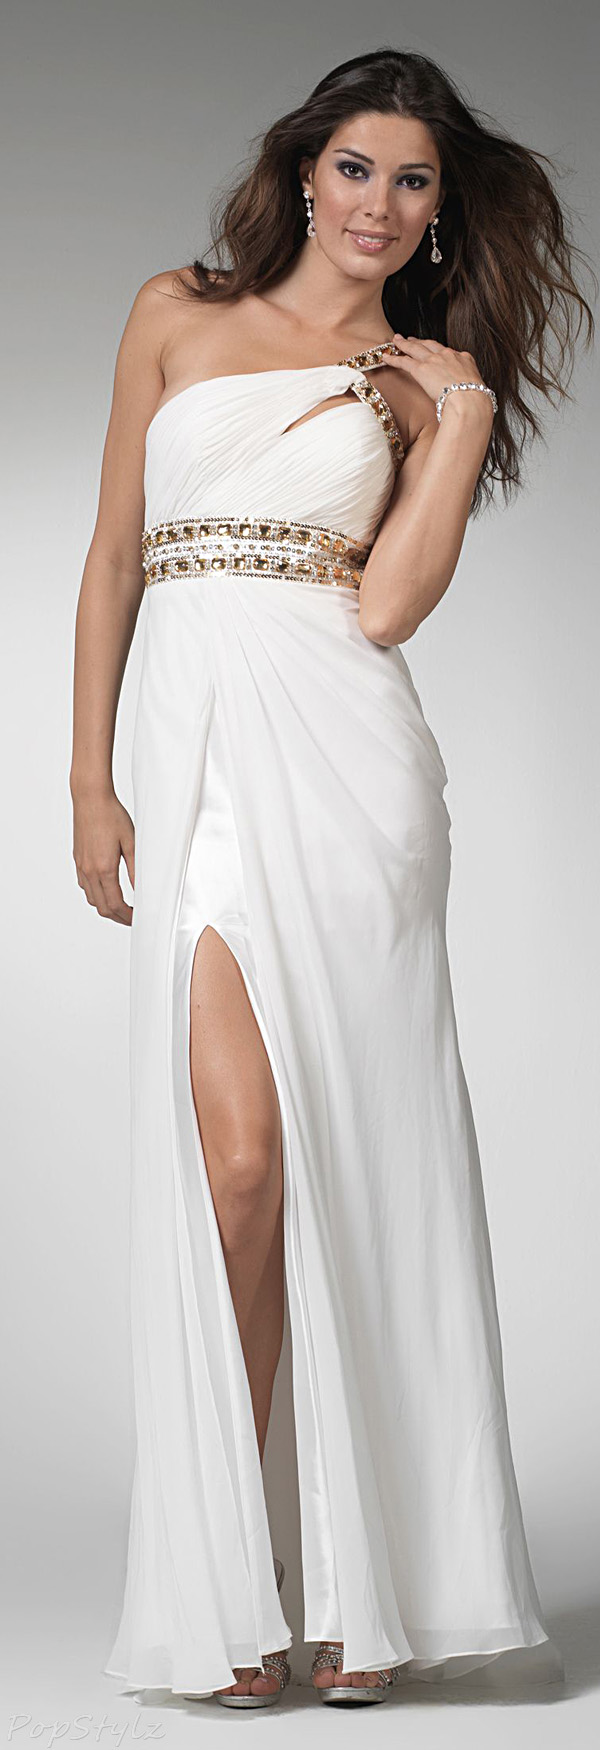 Clarisse 1501 One Shoulder Ivory Gown